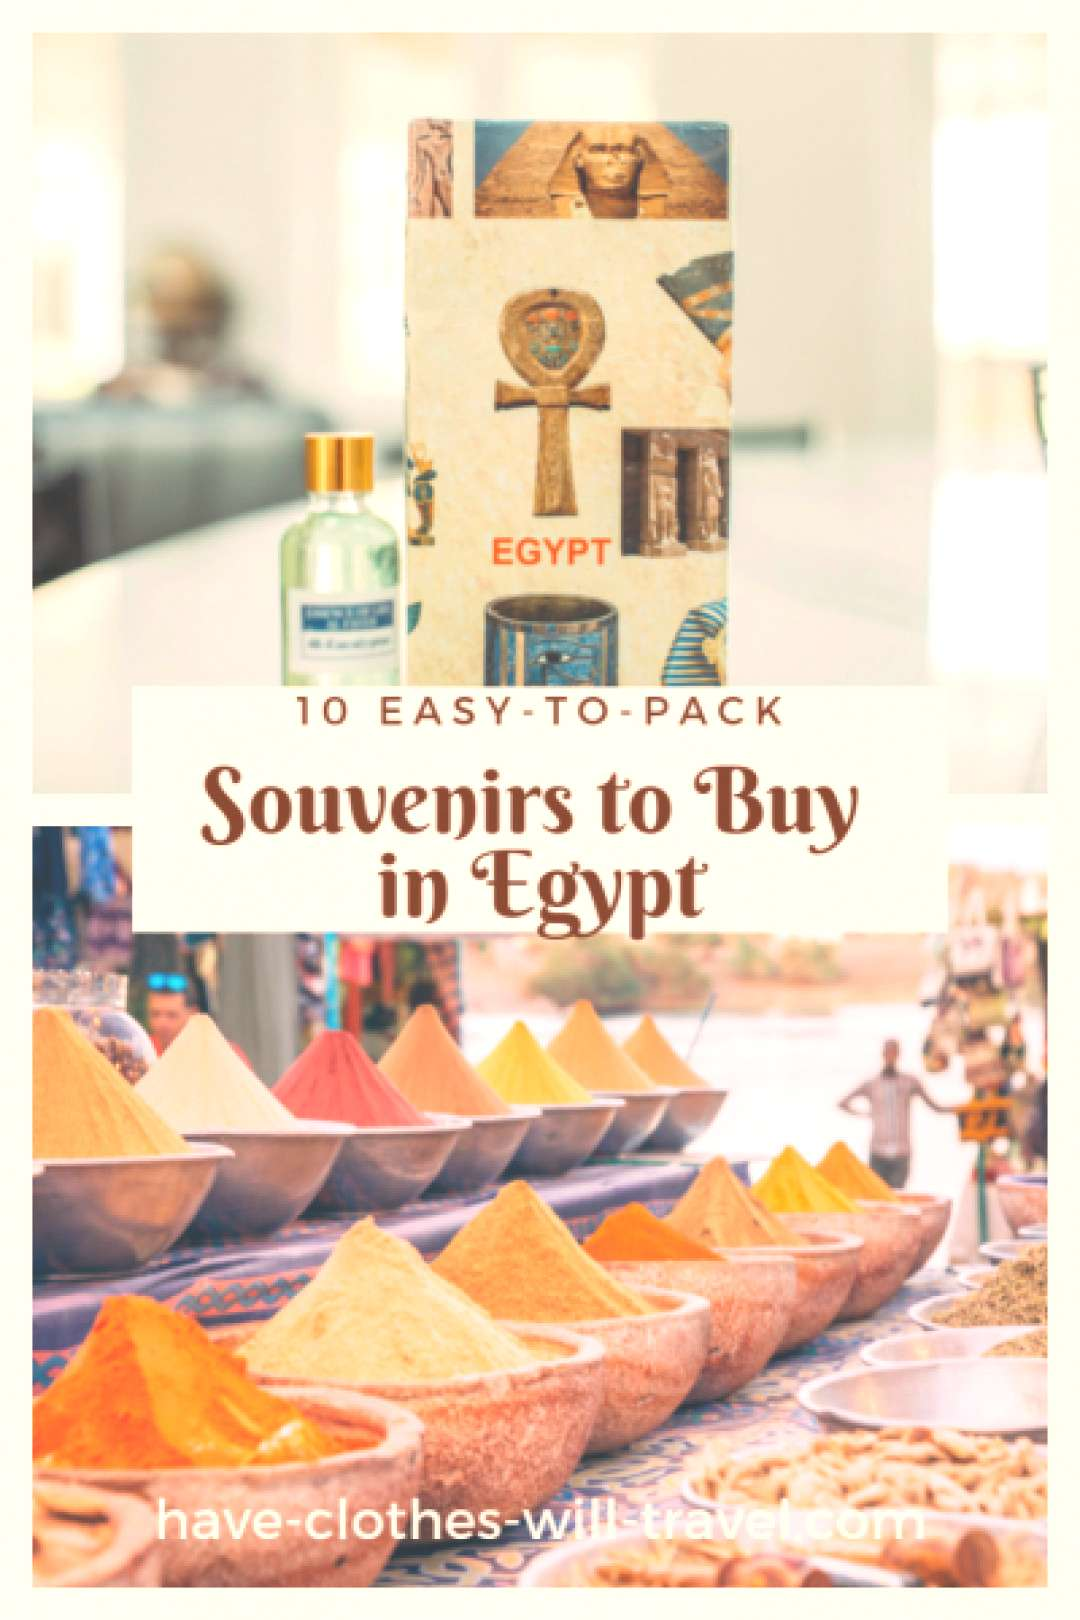 10 Easy-to-Pack Souvenirs to Buy in Egypt - 10 Easy-to-Pack Souvenirs to Buy in Egypt / Souvenirs